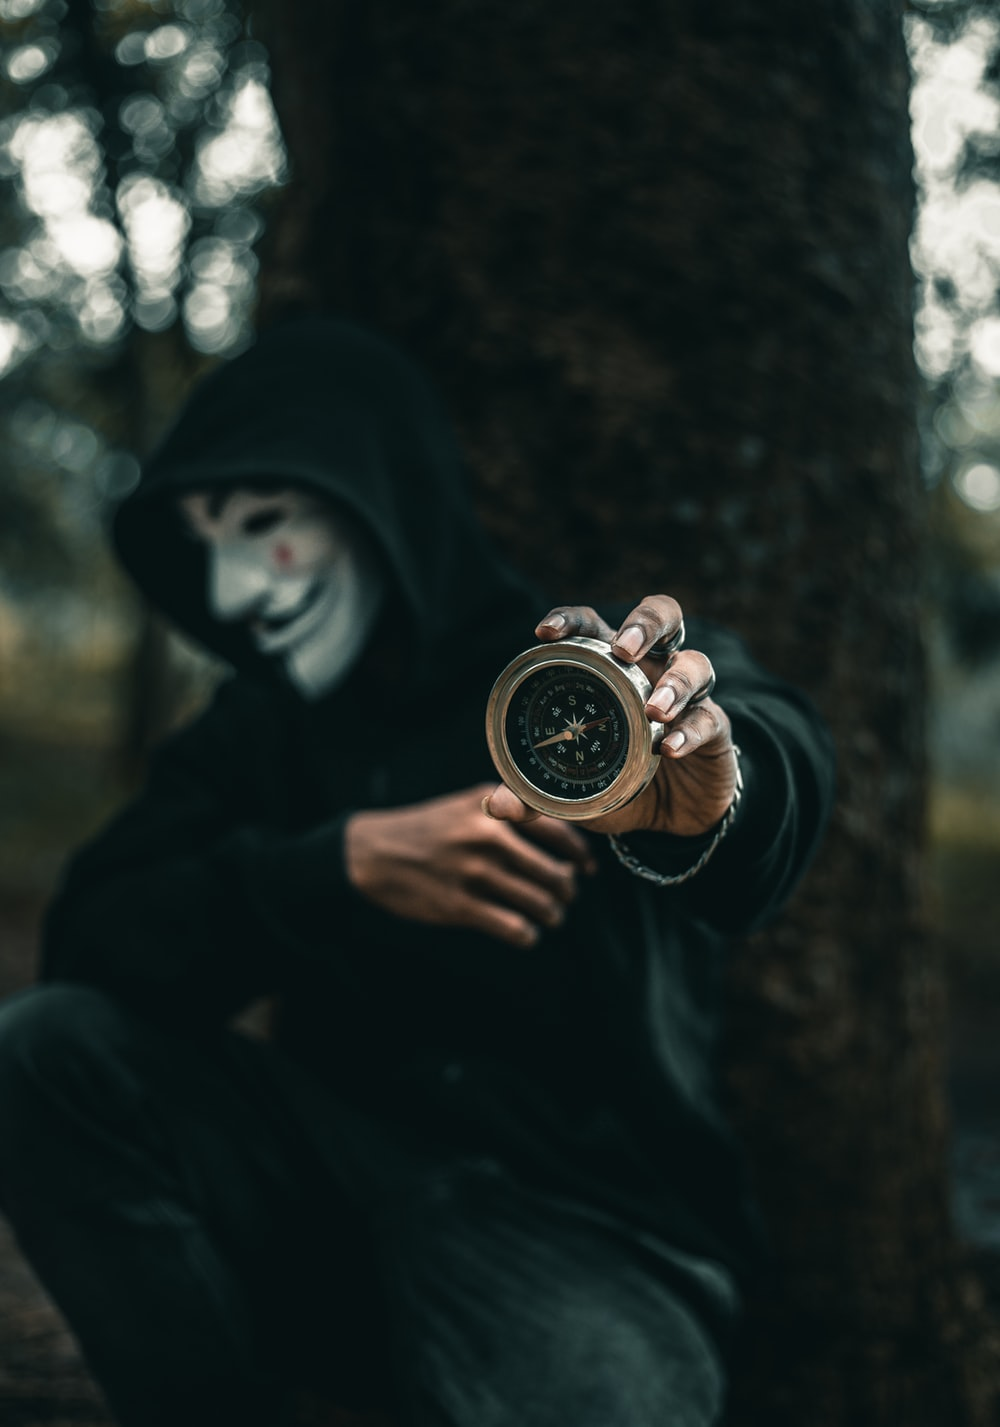 person wearing Guy Folkes mask holding round gold-colored compass